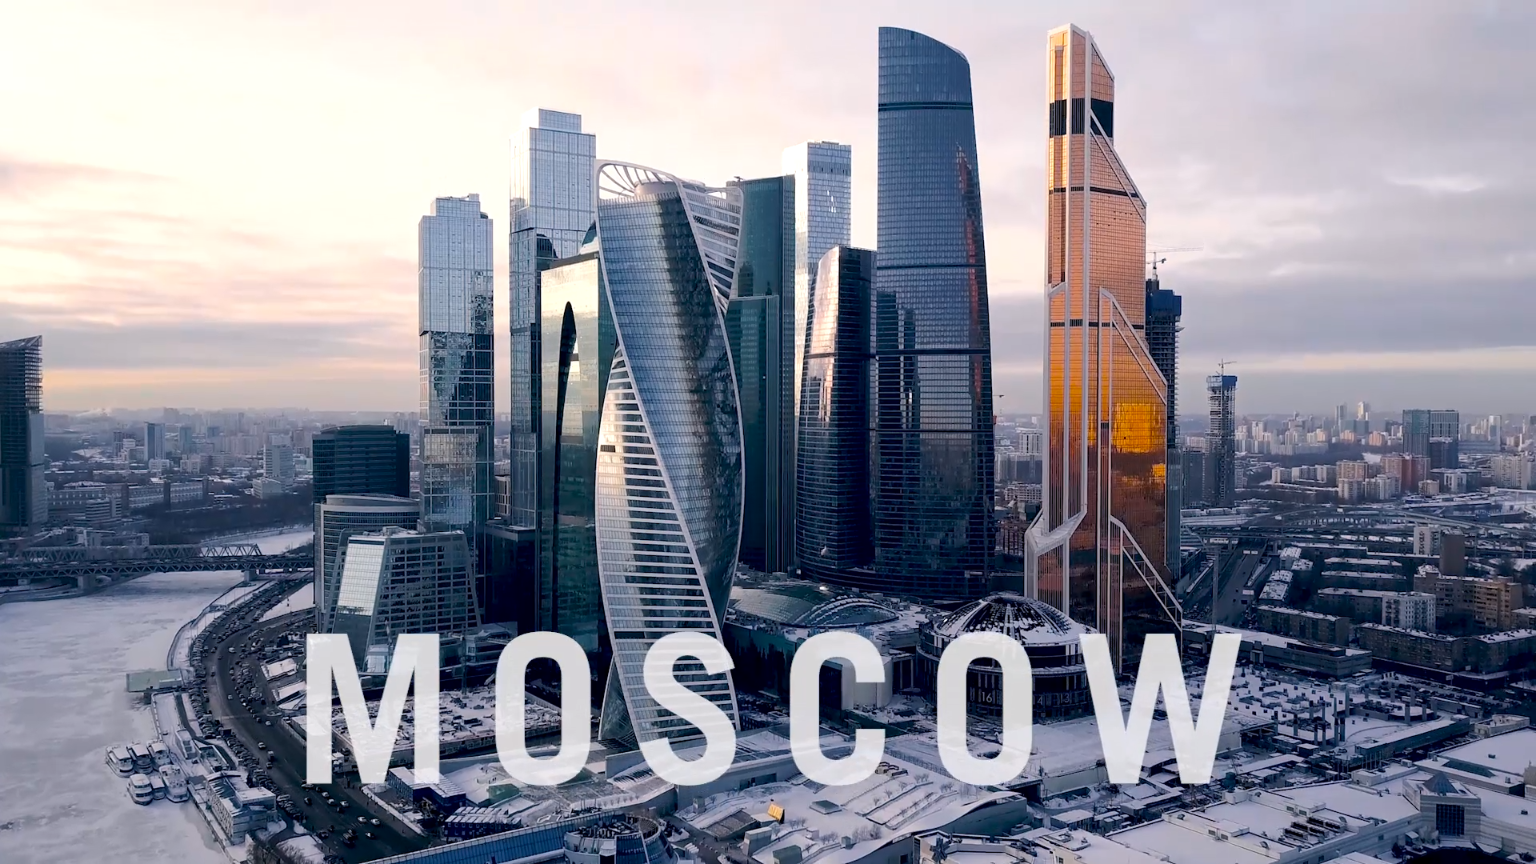 Moscow Travel Guide - Whether you were drawn here by the city's rich cultural heritage, its turbulent political history, its breathtaking performing arts or just the need for some good caviar, Moscow will inspire and confound you. #Moscow #TravelRussia #MoscowTravelGuide | Travel + Leisure